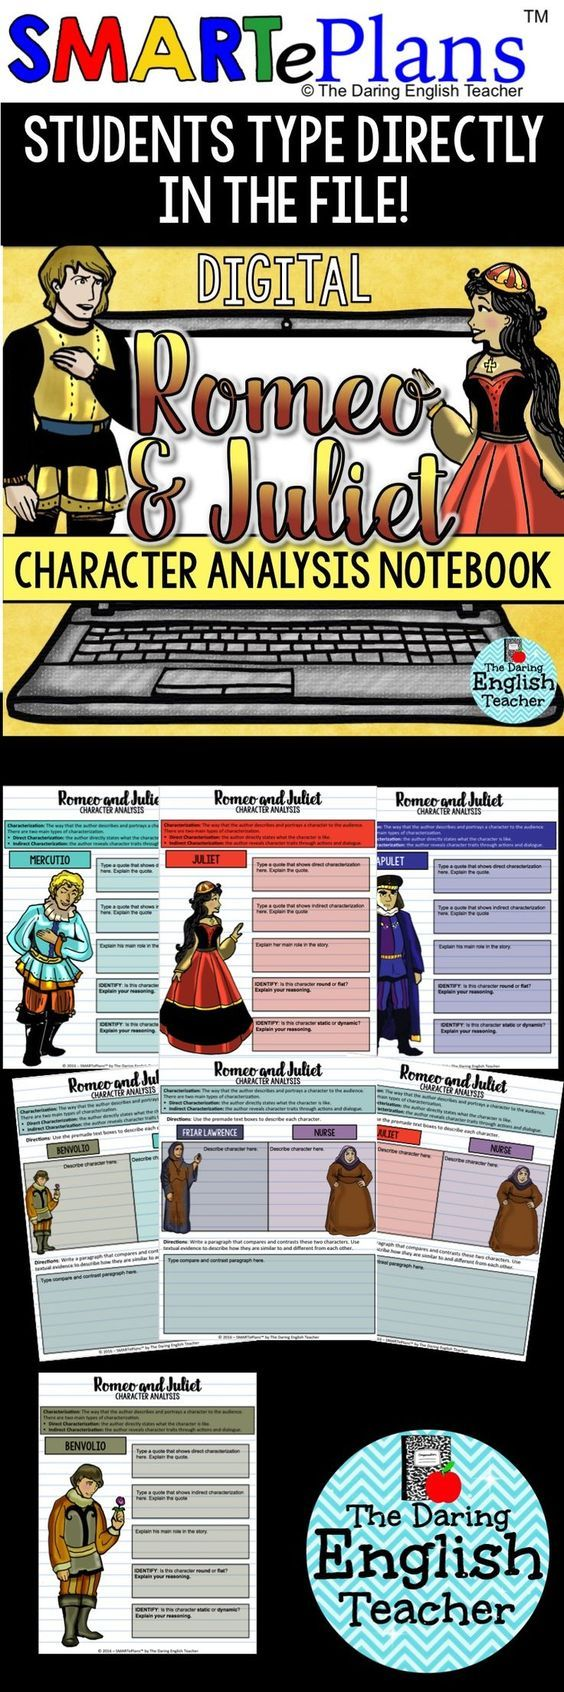 Smarteplan Digital Fahrenheit 451 Character Analysi Interactive Notebook Teaching Shakespeare English Classroom Romeo And Juliet Prologue Act 1 Study Guide Answers